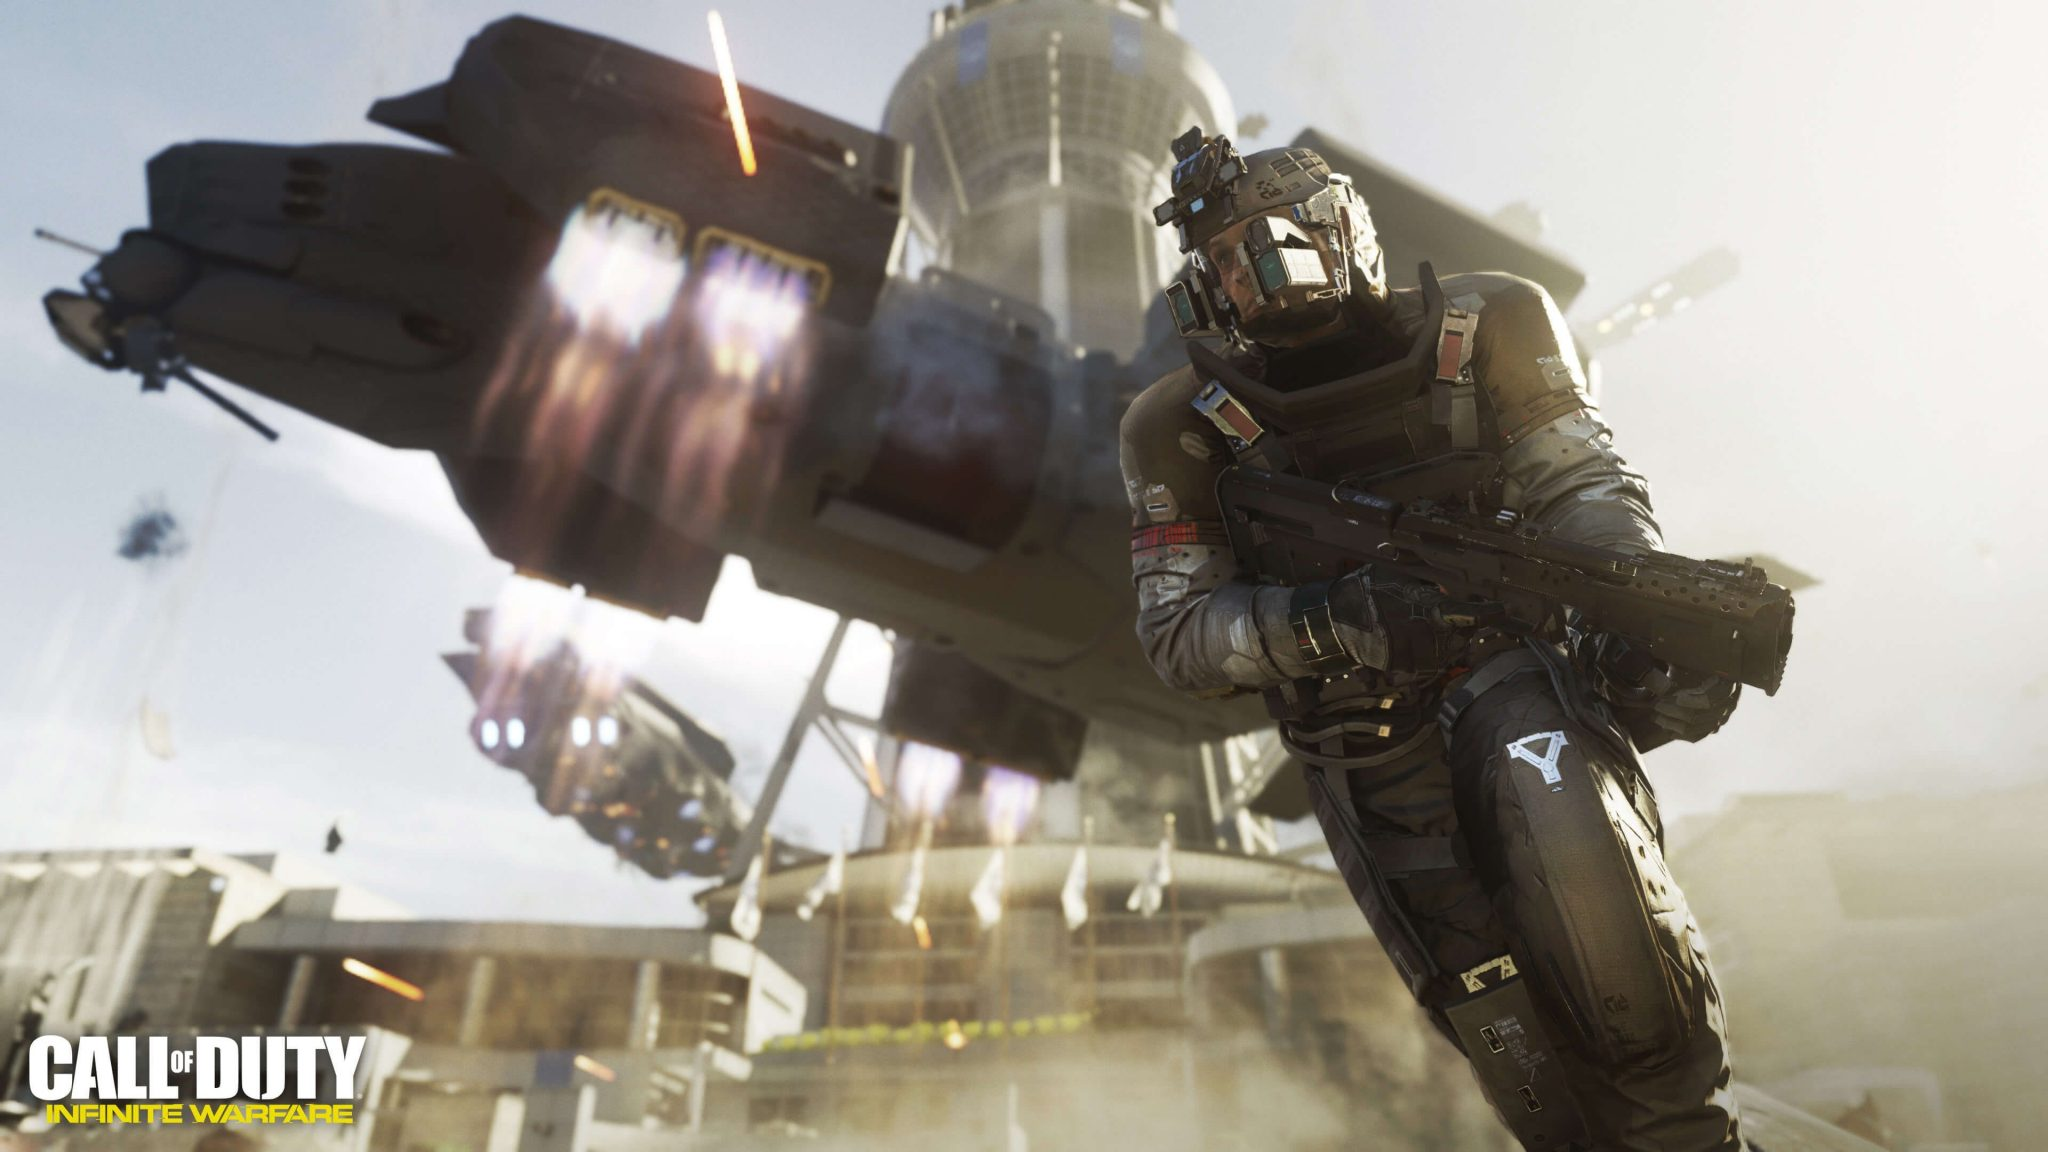 call-of-duty-infinite-warfare-screenshot-01.jpg.optimal